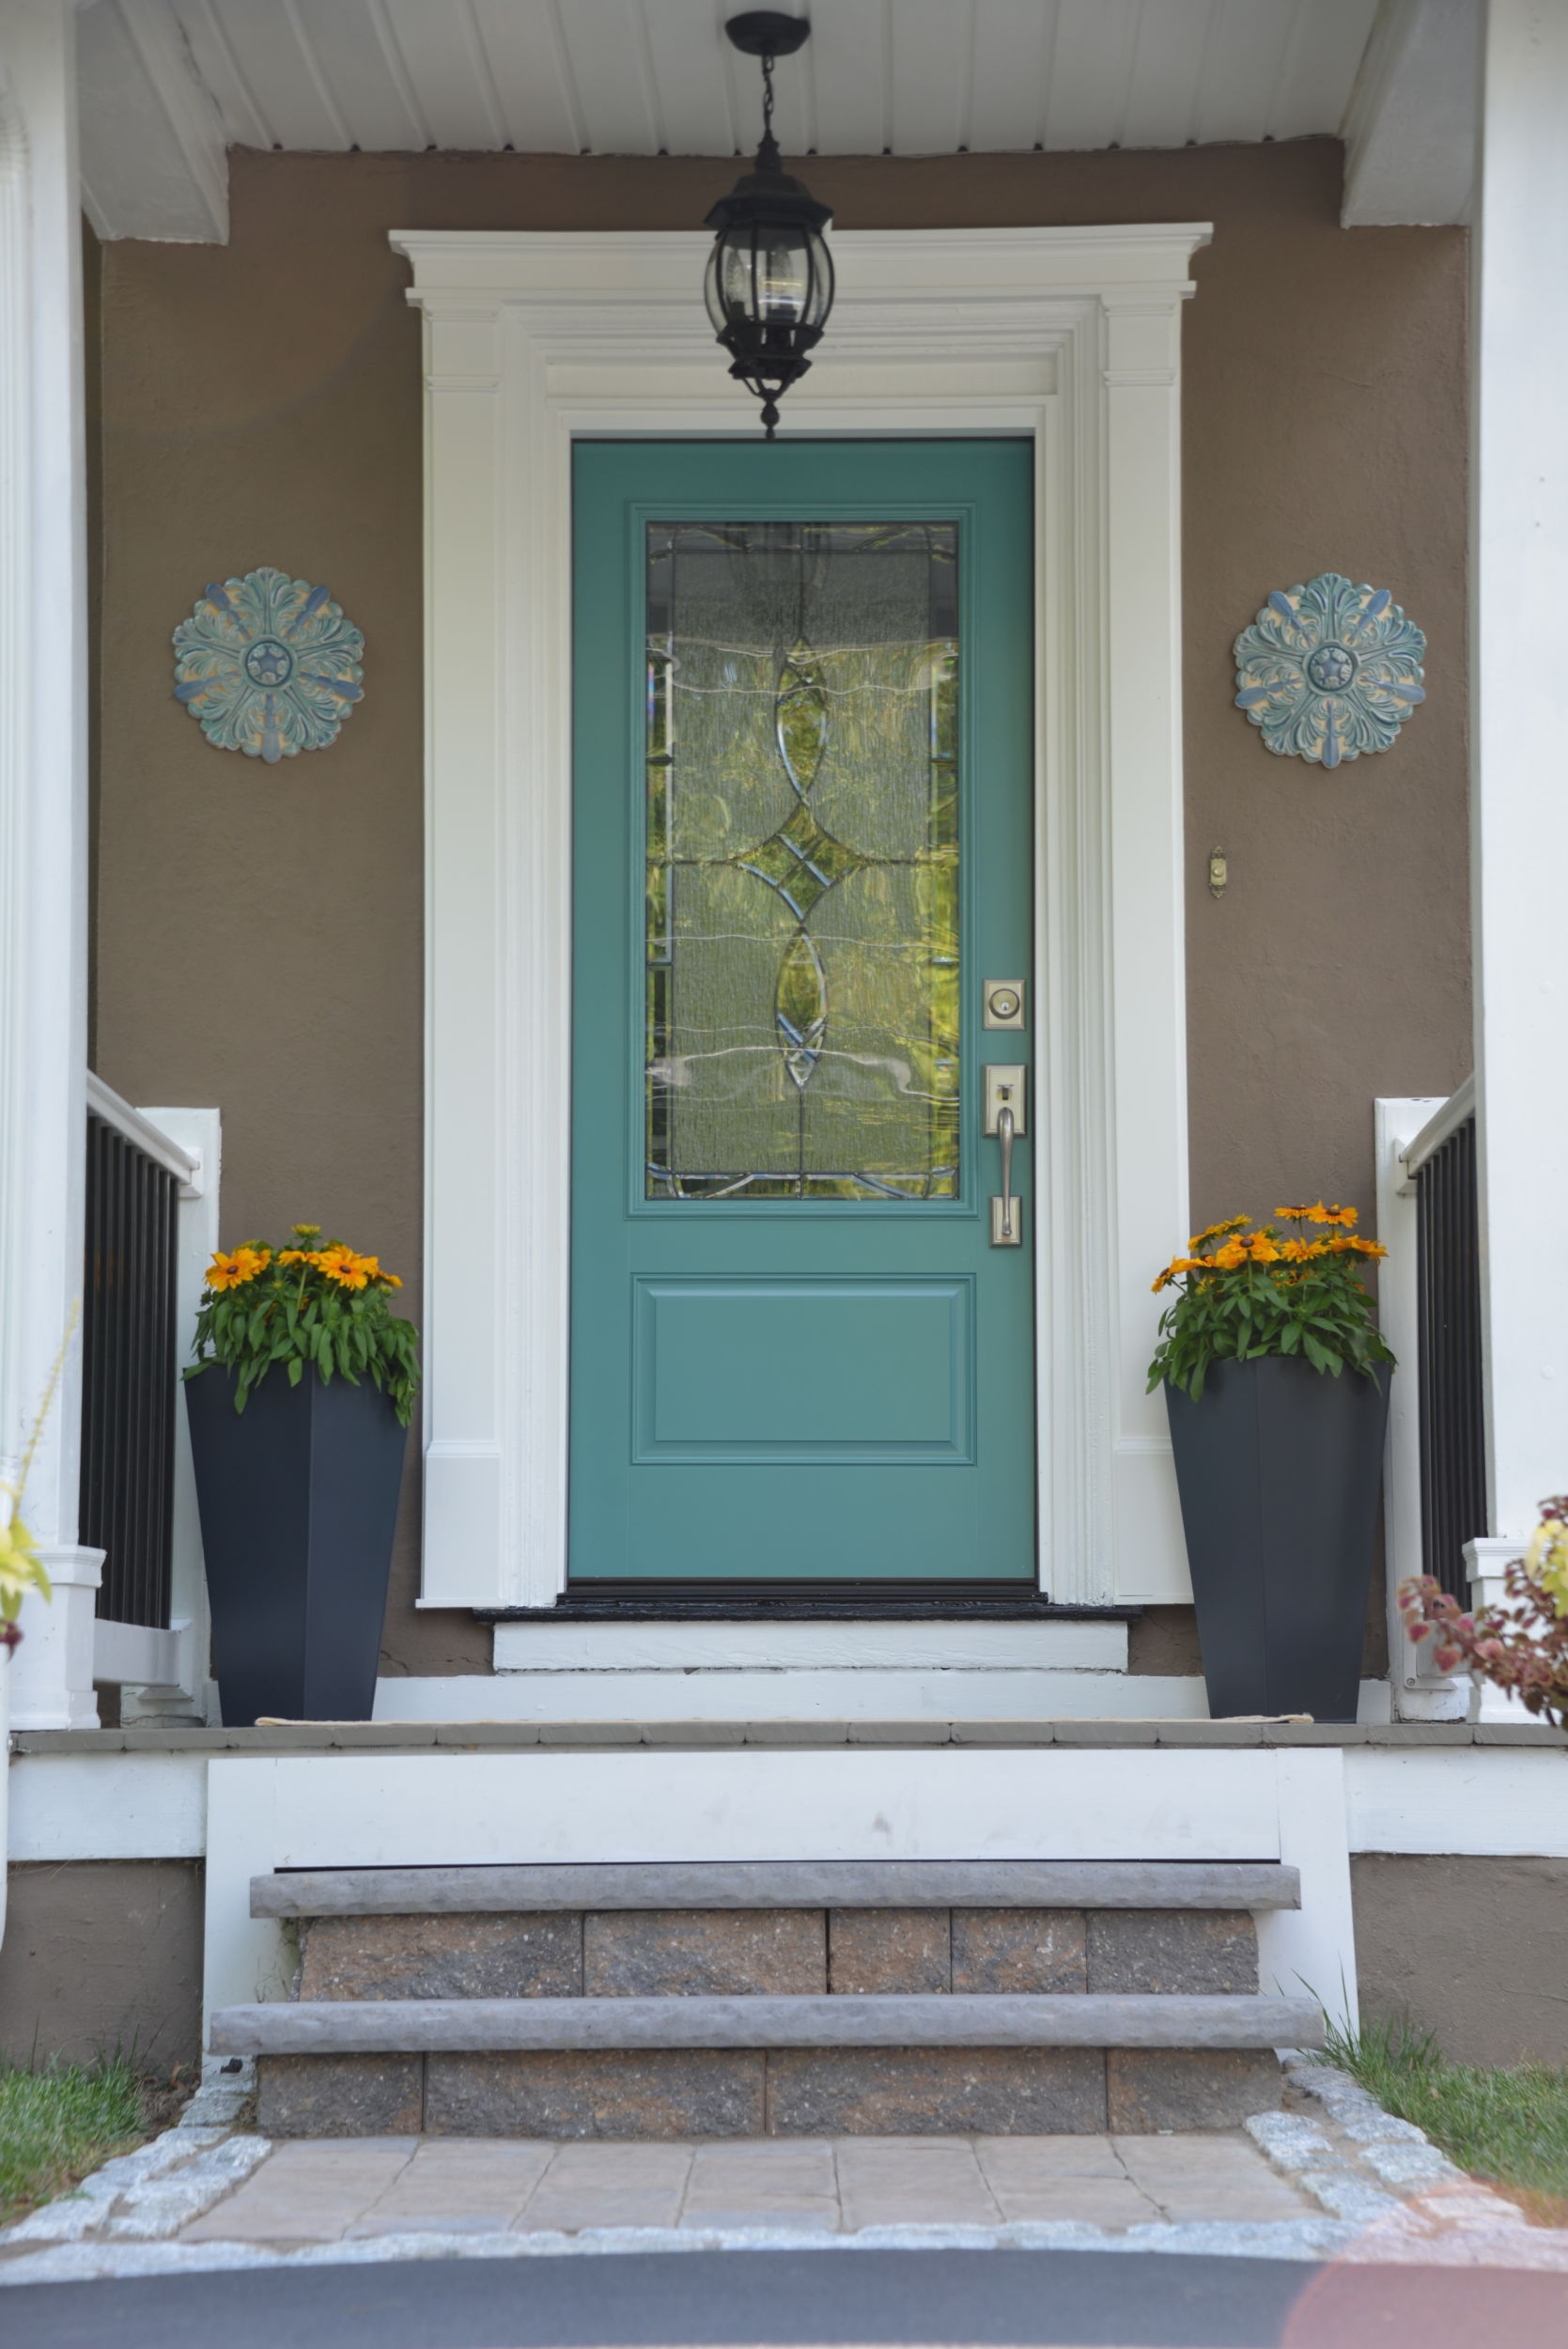 Tru Doors Therma Tru Home Makeover Lagoon Door Entryway